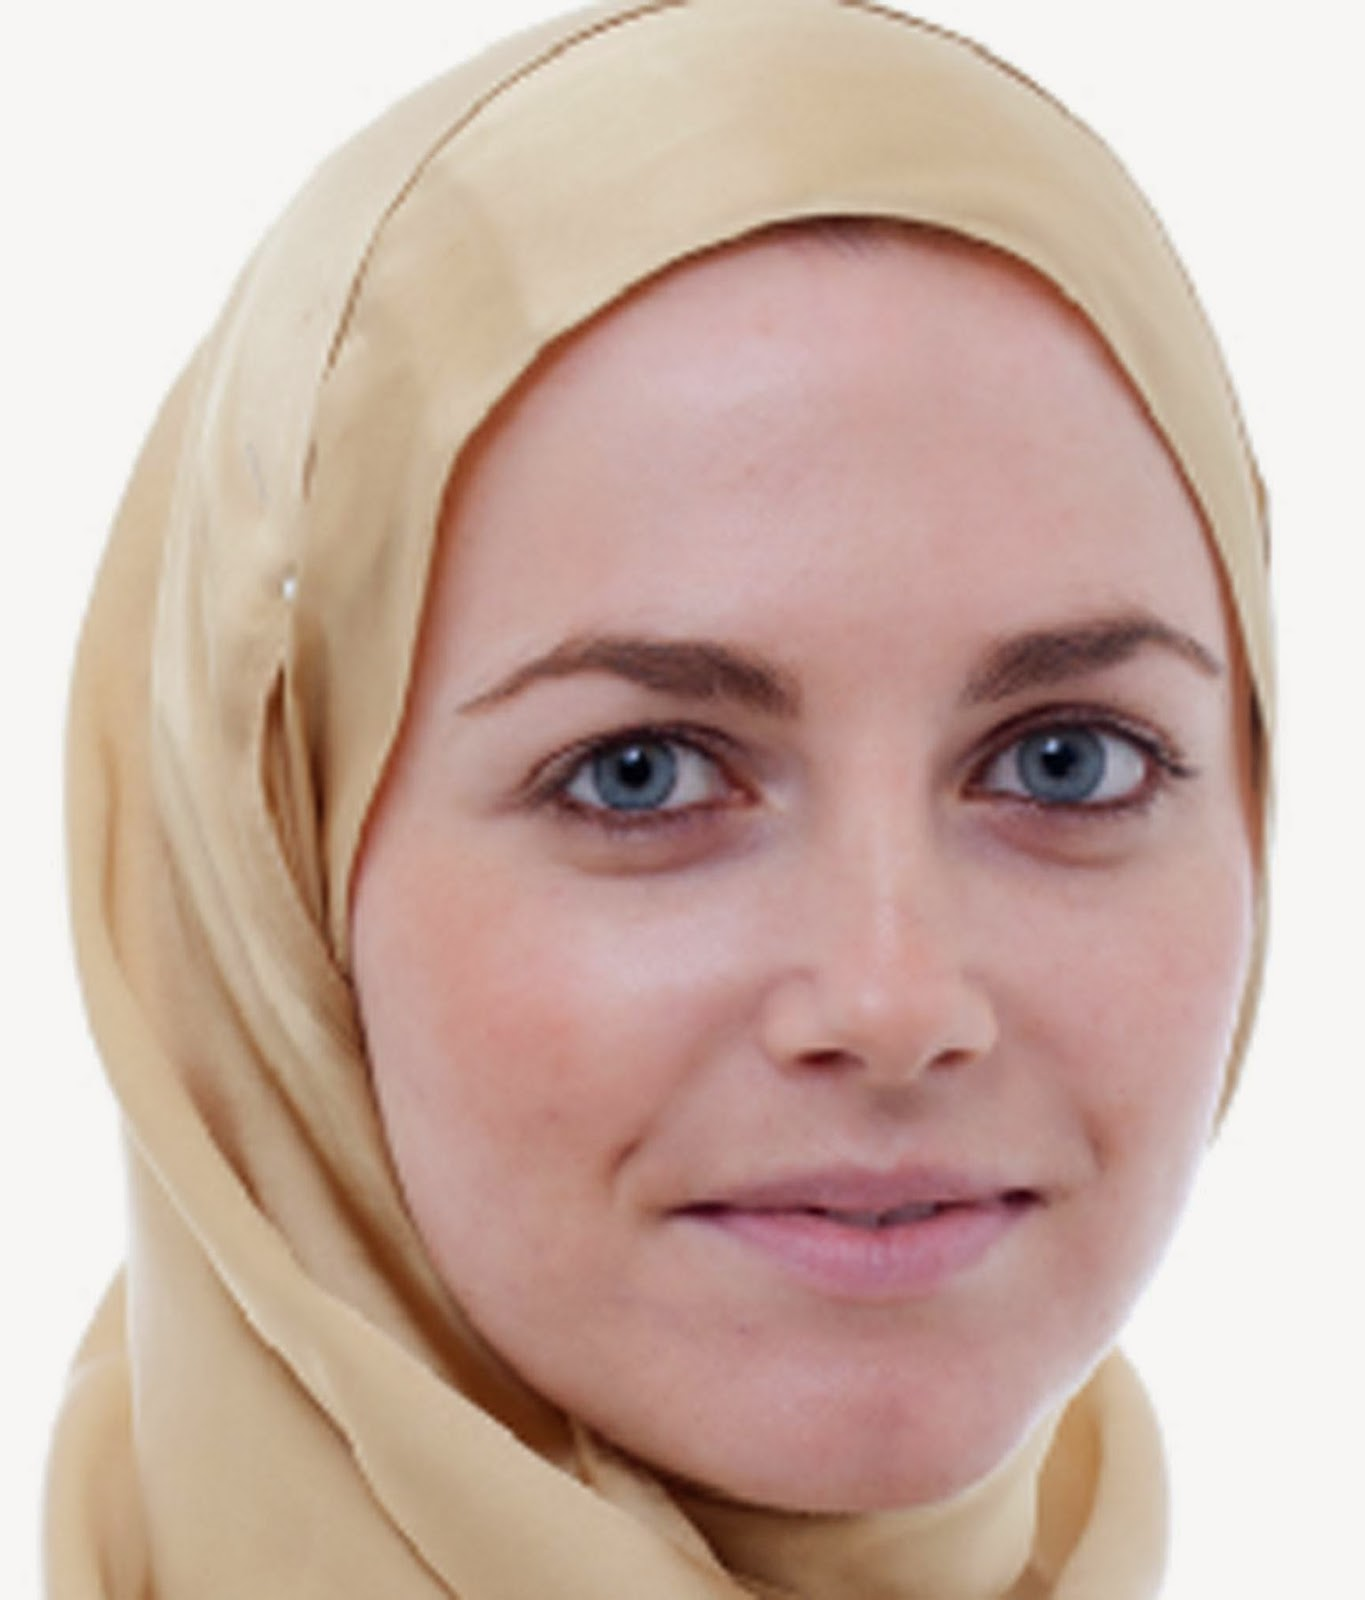 normantown single muslim girls The problem with dating as a muslim w breaking news tap here to turn on desktop notifications to get the news sent straight to you edition shireen qudosi, contributor muslim free thinker director of muslim matters, at america matters what men don't get about dating muslim women 11/08/2016 01:49 pm et updated dec 01, 2016 muslim.